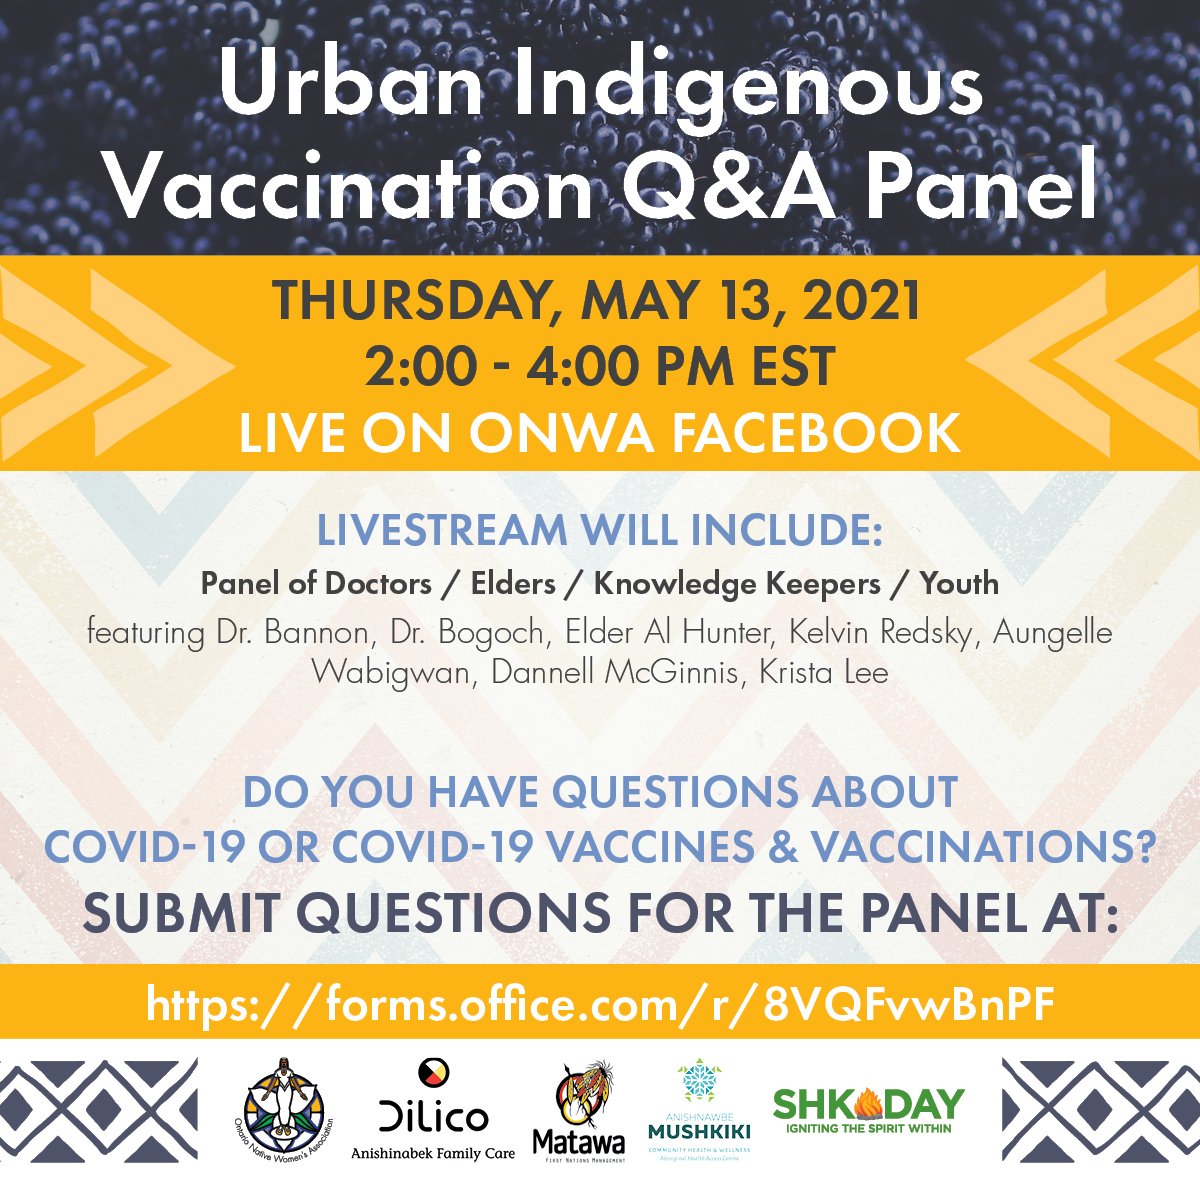 ONWA in partnership with Dilico, Anishnawbe Mushkiki, Shkoday and Matawa will be hosting a live Question and Answer event to address vaccine hesitancy and encourage vaccinations. Community members can submit questions that they have here: https://forms.office.com/r/8VQFvwBnPF The event will be live-streamed on ONWA's Facebook: www.facebook.com/ONWA7